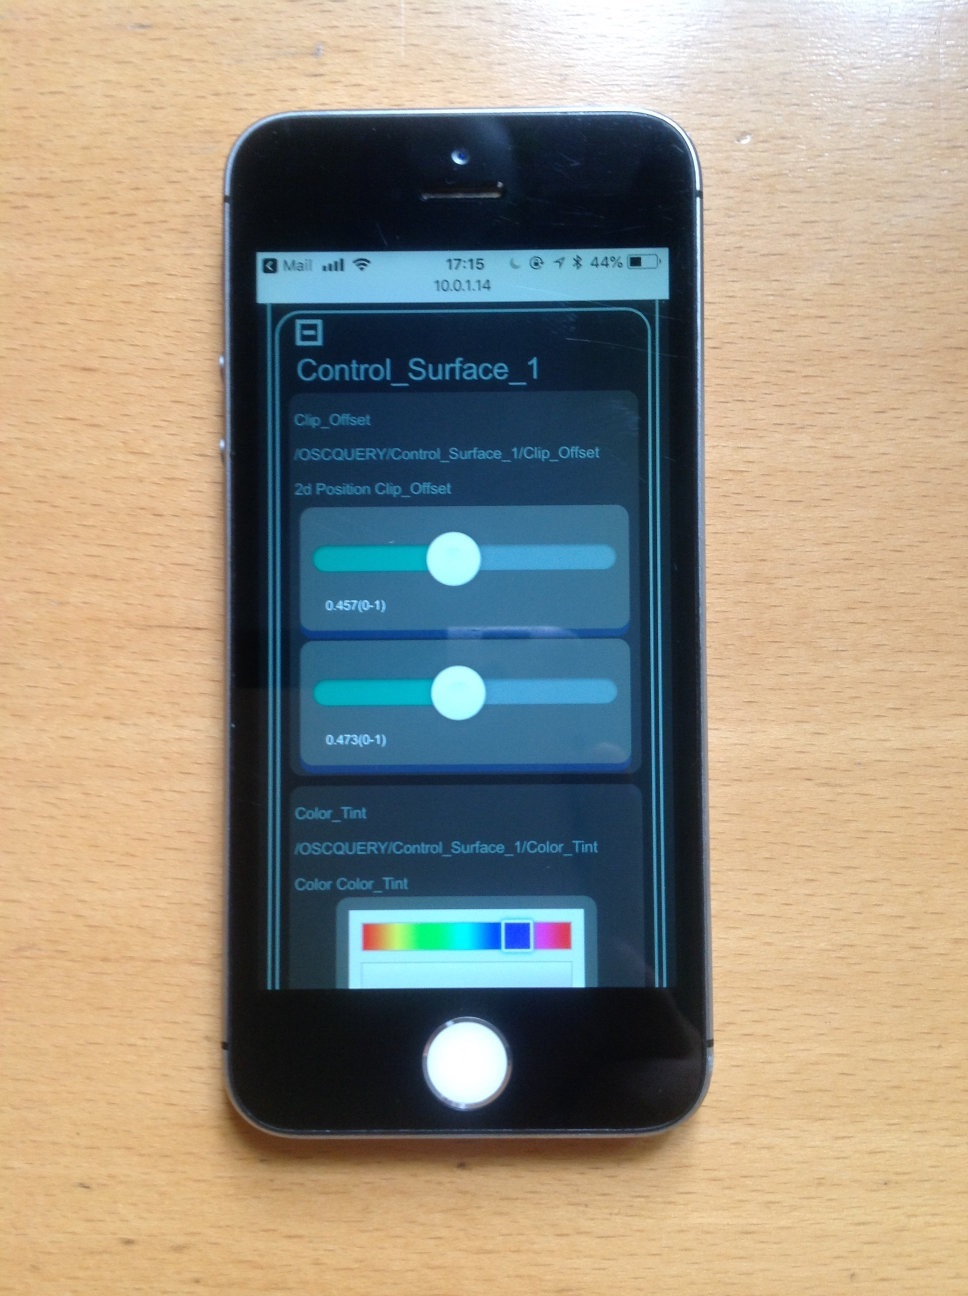 The demonstrated web control capabilities can also be used on smart phones and tablets.